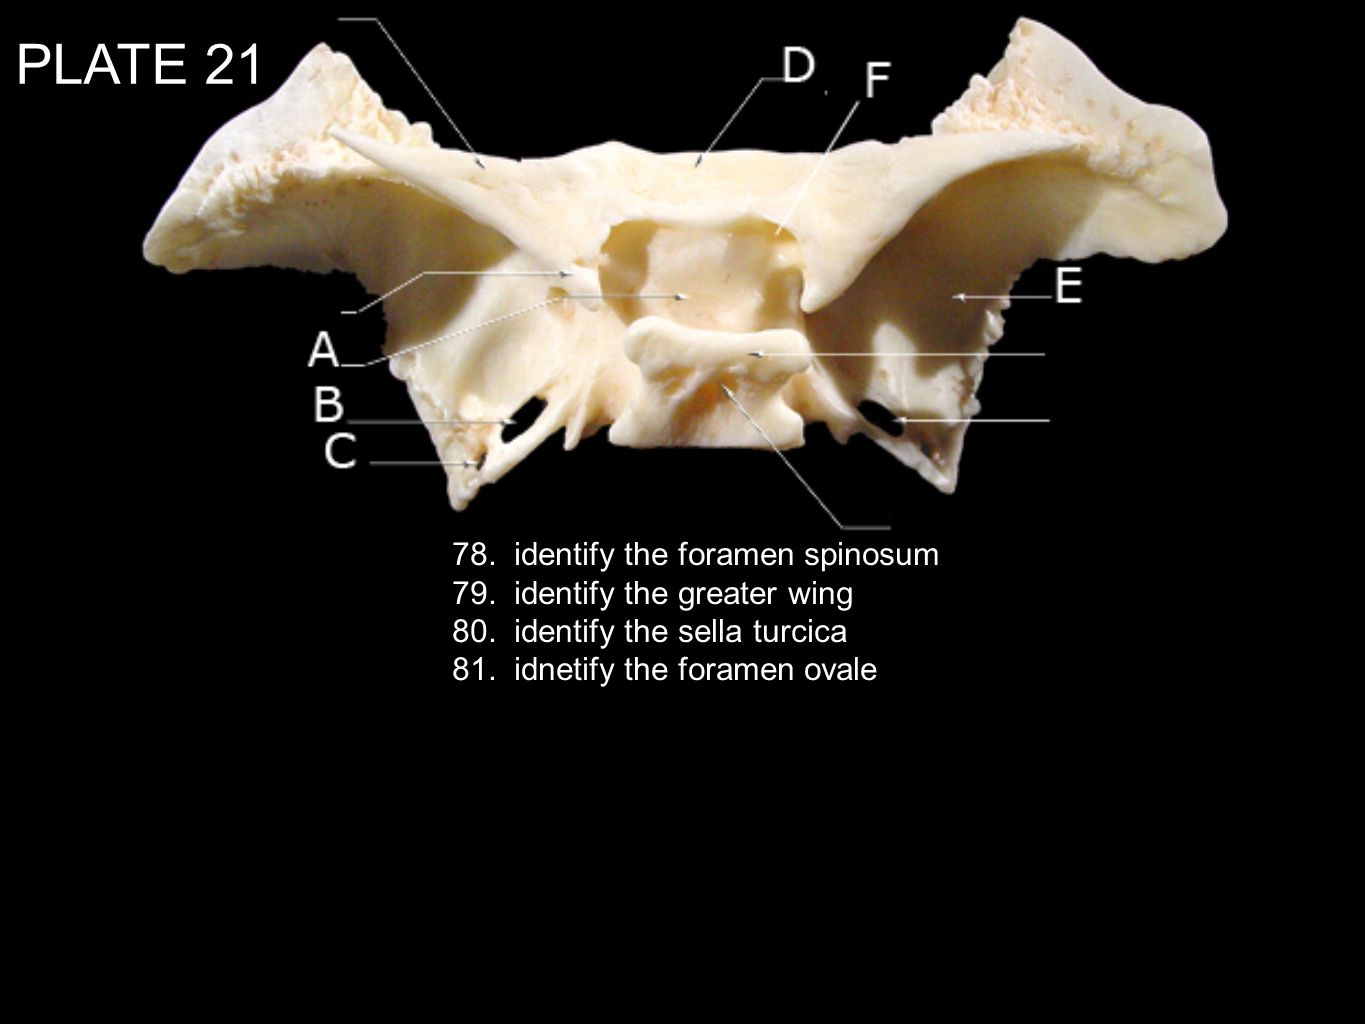 PLATE 21 78. identify the foramen spinosum 79. identify the greater wing 80. identify the sella turcica 81. idnetify the foramen ovale